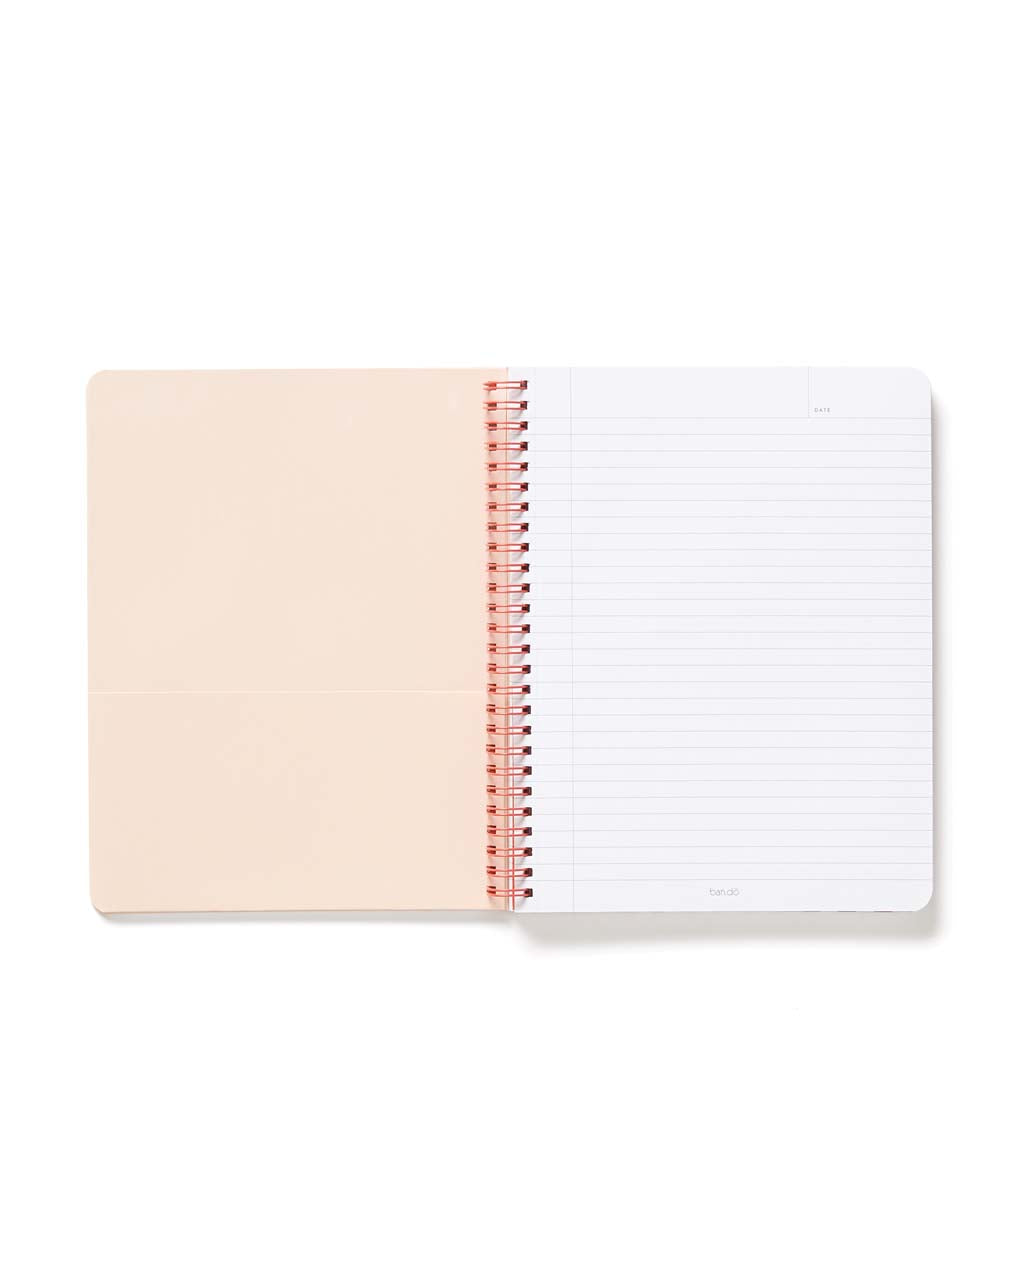 Interior view of notebook containing a blush pink pocket